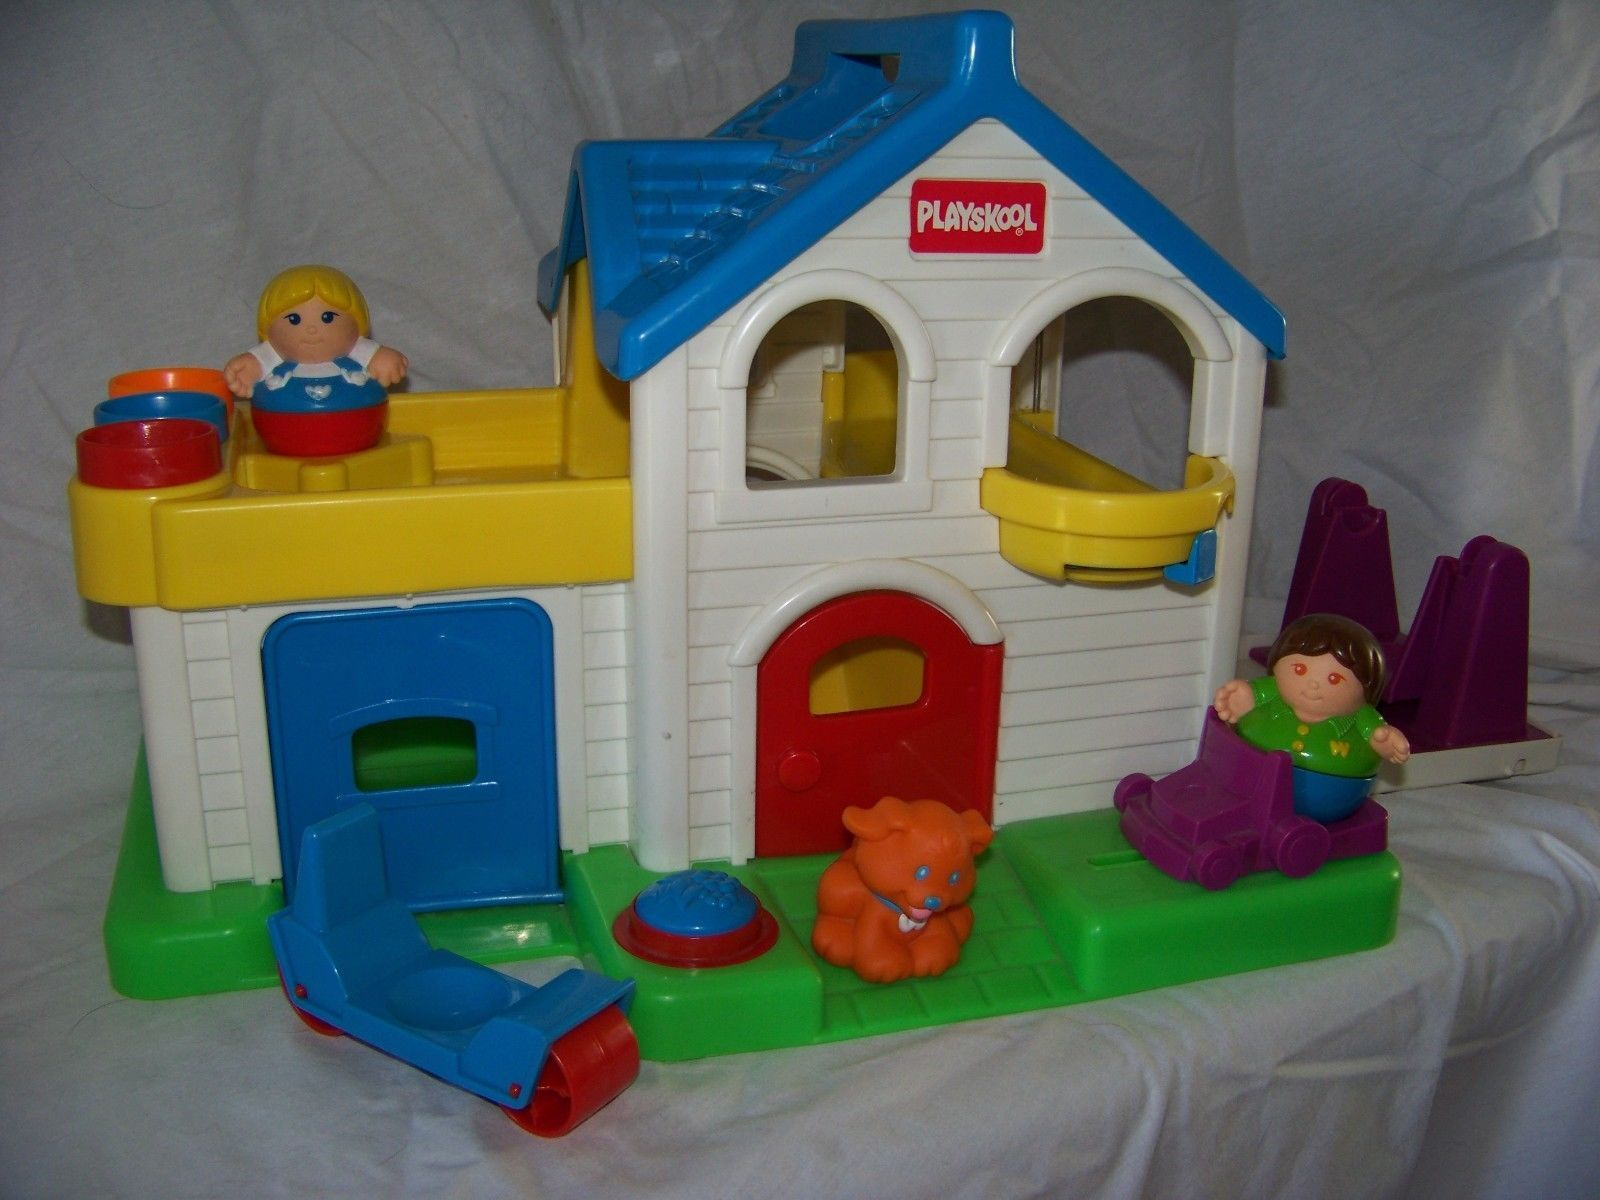 Weebles Playskool playhouse